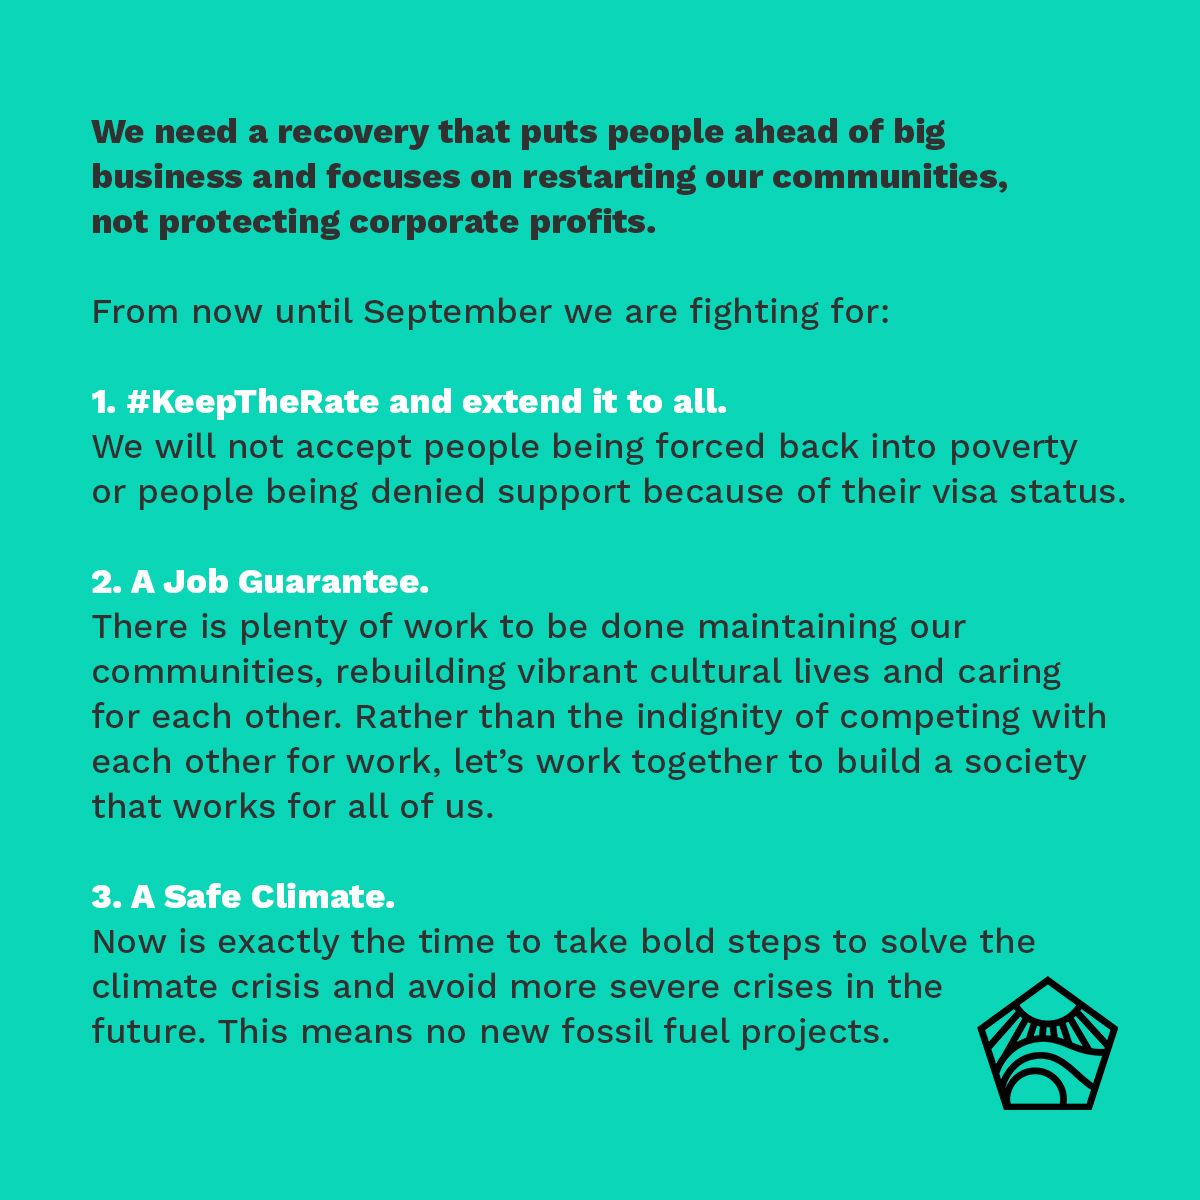 We need a recovery that puts people ahead of big business and focuses on restarting our communities, not protecting corporate profits. From now until September we are fighting for: 1. KeepTheRate and extend it to all - We will not accept people being forced back into poverty or people being denied support because of their visa status. 2. A Job Guarantee - There is plenty of work to be done maintaining our communities, rebuilding vibrant cultural lives and caring for each other. Rather than the indignity of competing with each other for work, let's work together to build a society that works for all of us. 3. A Safe Climate - Now is exactly the time to take bold steps to solve the climate crisis and avoid more severe crises in the future. This means no new fossil fuel projects.